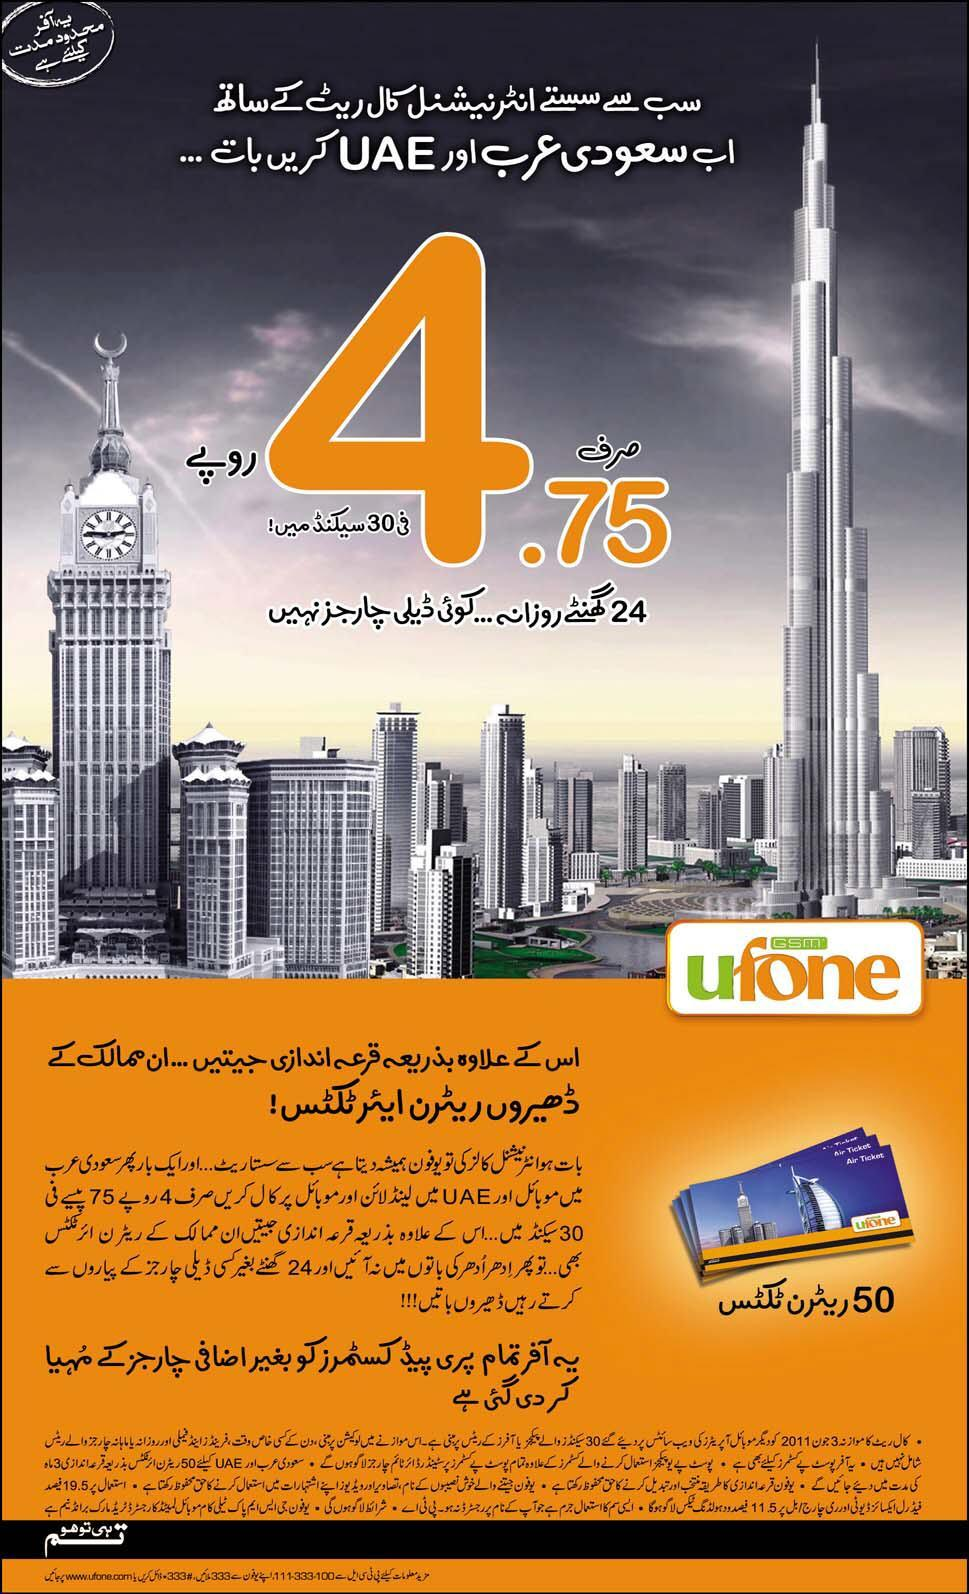 Ufone | Lowest Call Rate to Saudi Arabia & UAE Only Rs  4 75 | Win